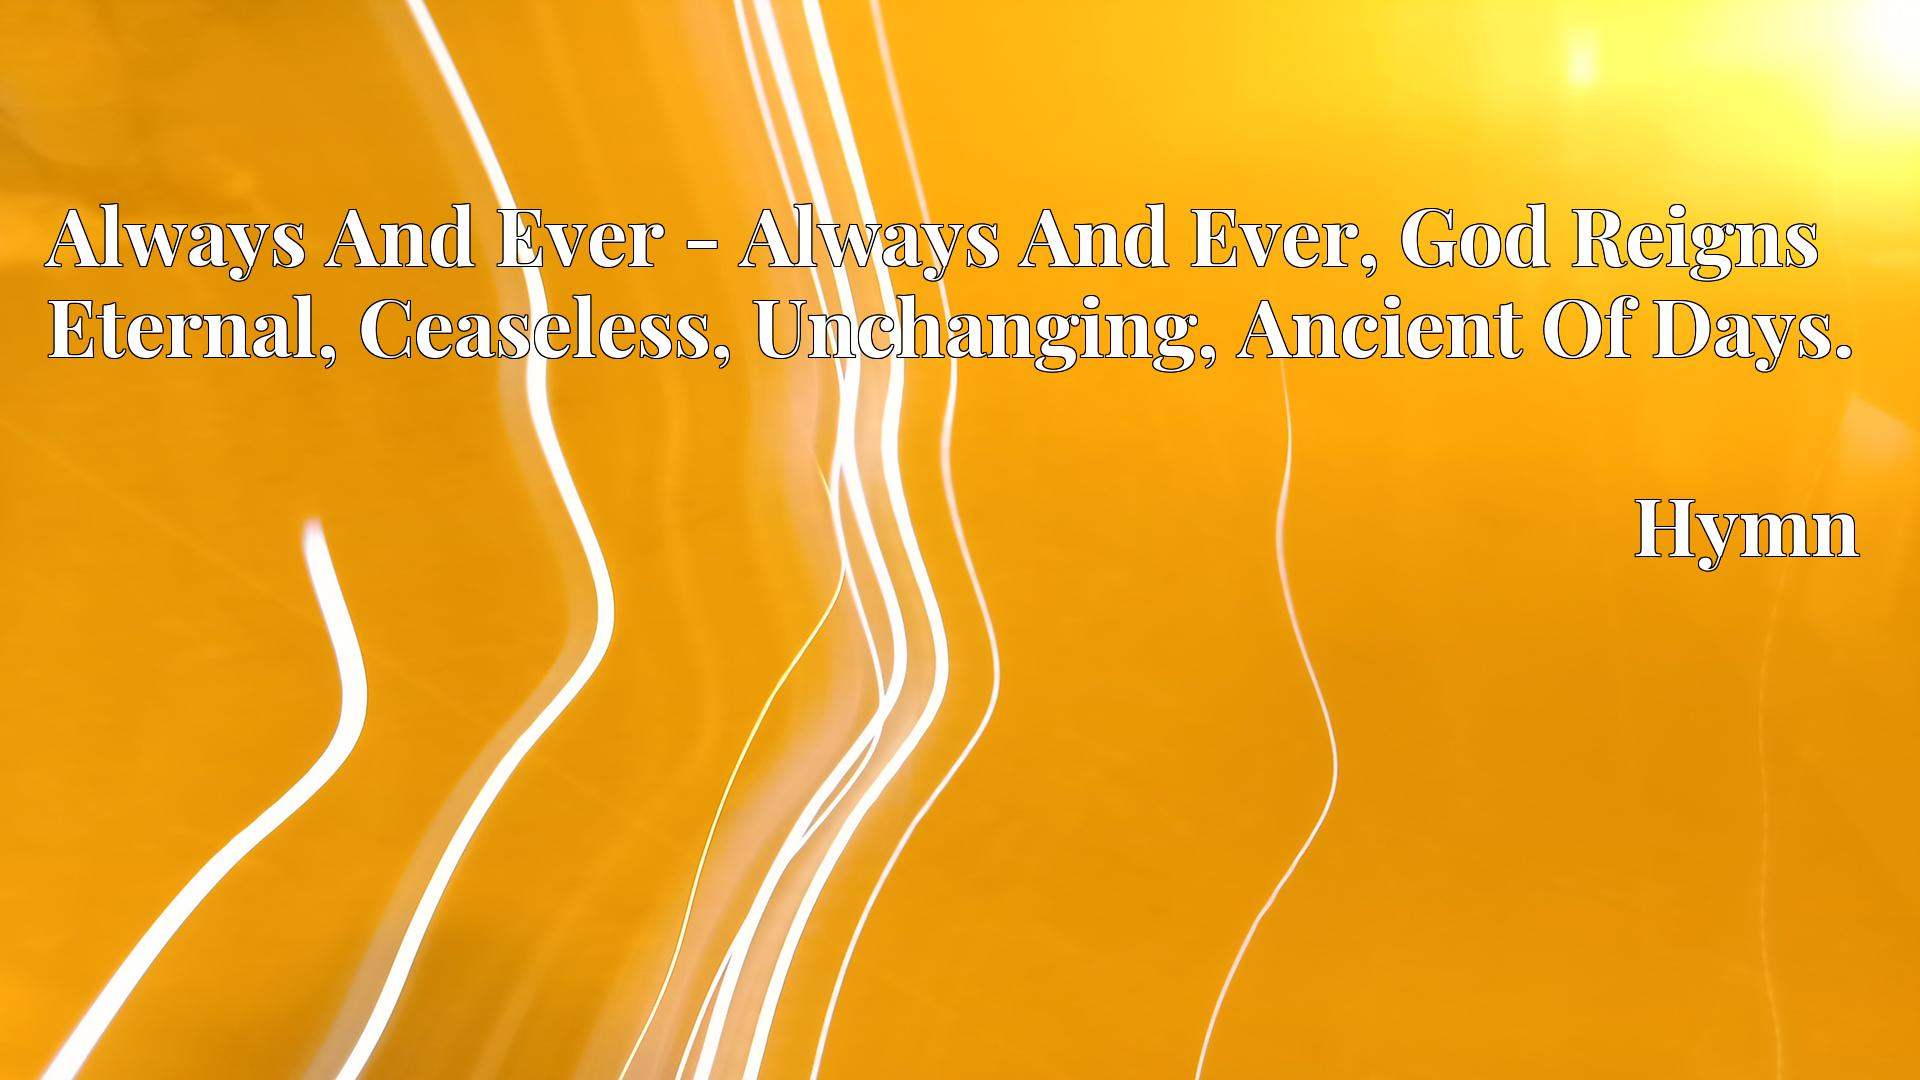 Always And Ever - Always And Ever, God Reigns Eternal, Ceaseless, Unchanging, Ancient Of Days. - Hymn